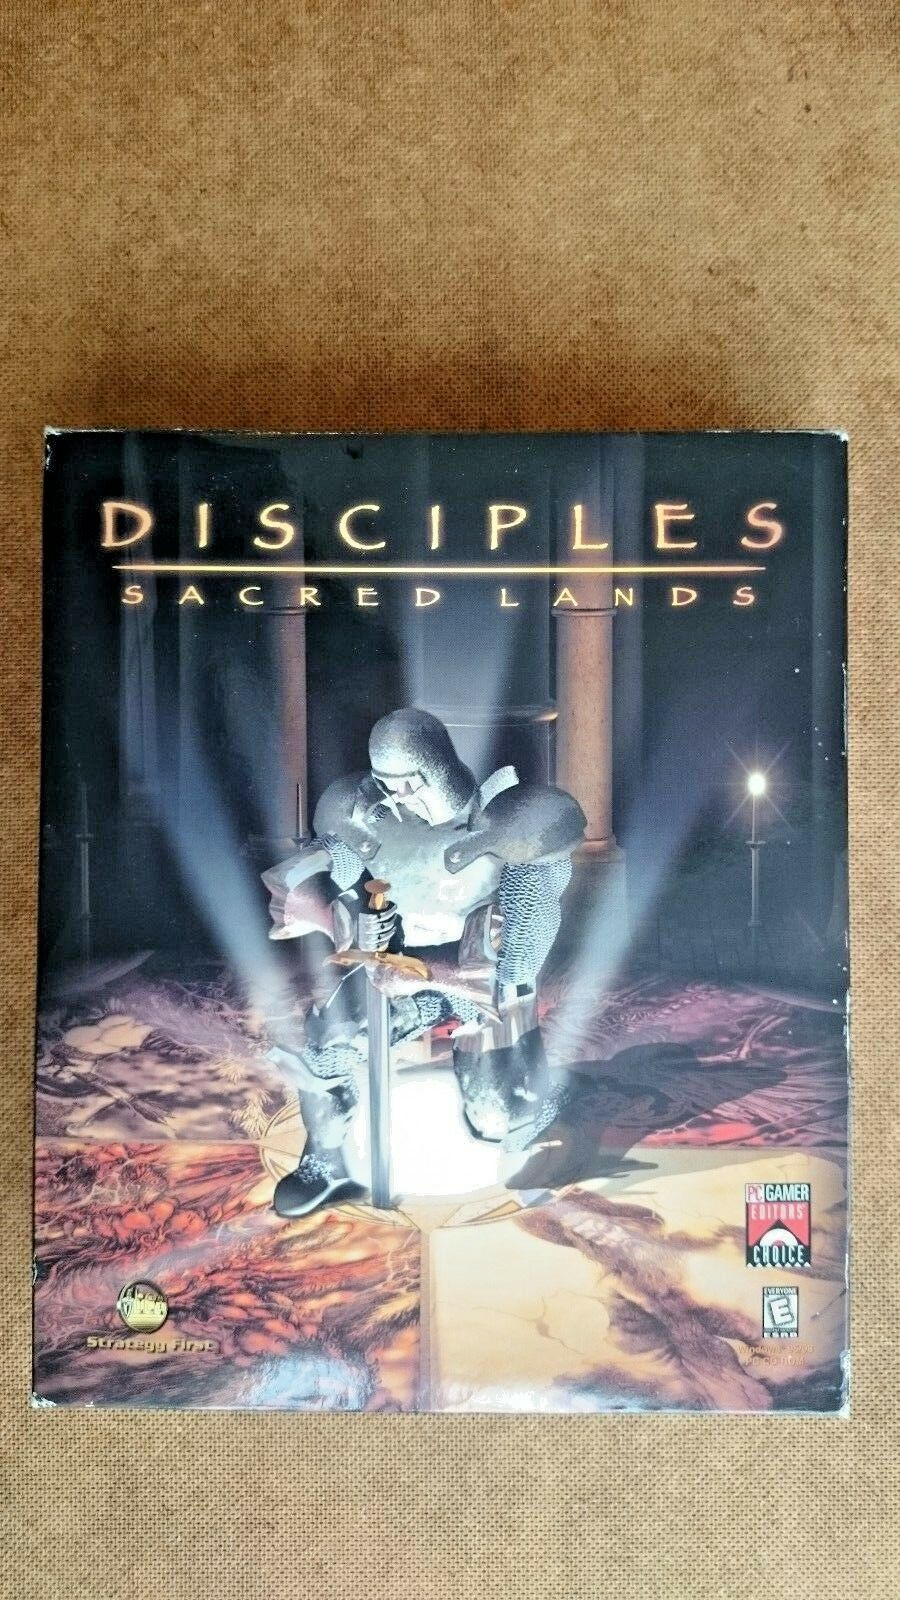 Disciples: Sacred Lands (Gold Edition) (PC: Windows, 1999) - Big Box Edition